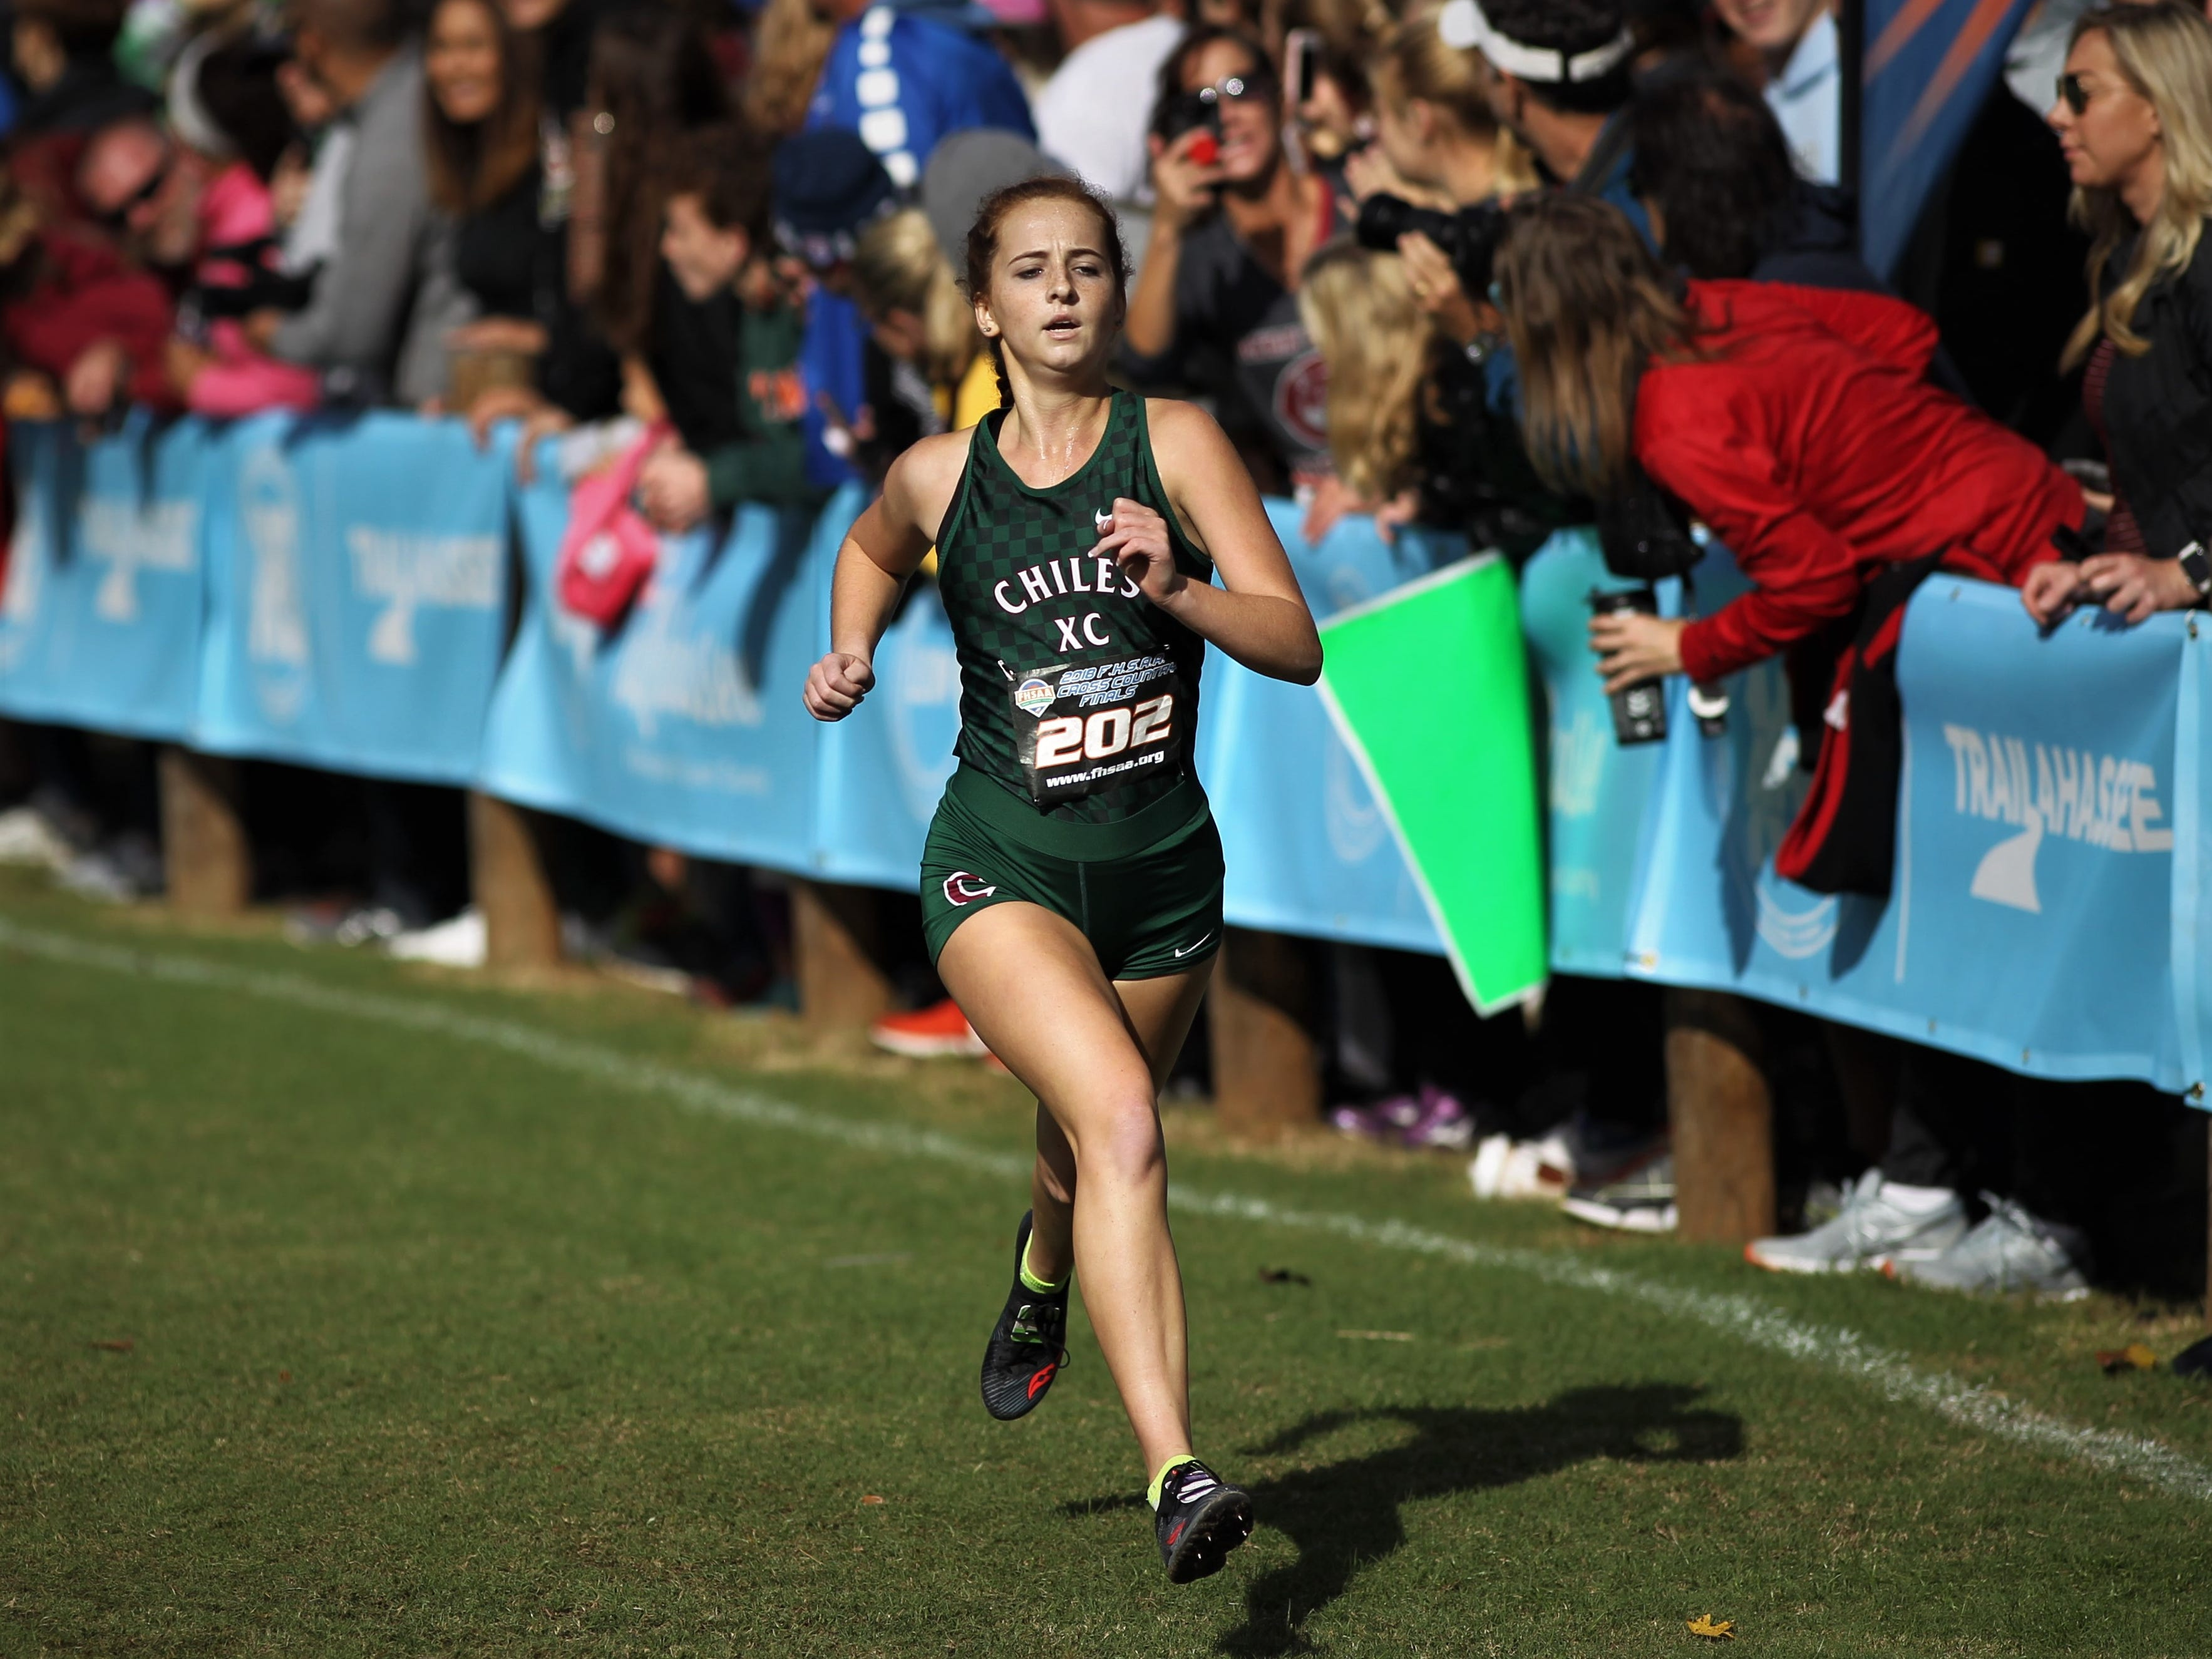 Chiles senior Emily Culley races to the finish of the Class 3A girls race in the FHSAA Cross Country State Championships at Apalachee Regional Park on Saturday, Nov. 10, 2018. Culley finished fifth and the Timberwolves won their second straight state title.